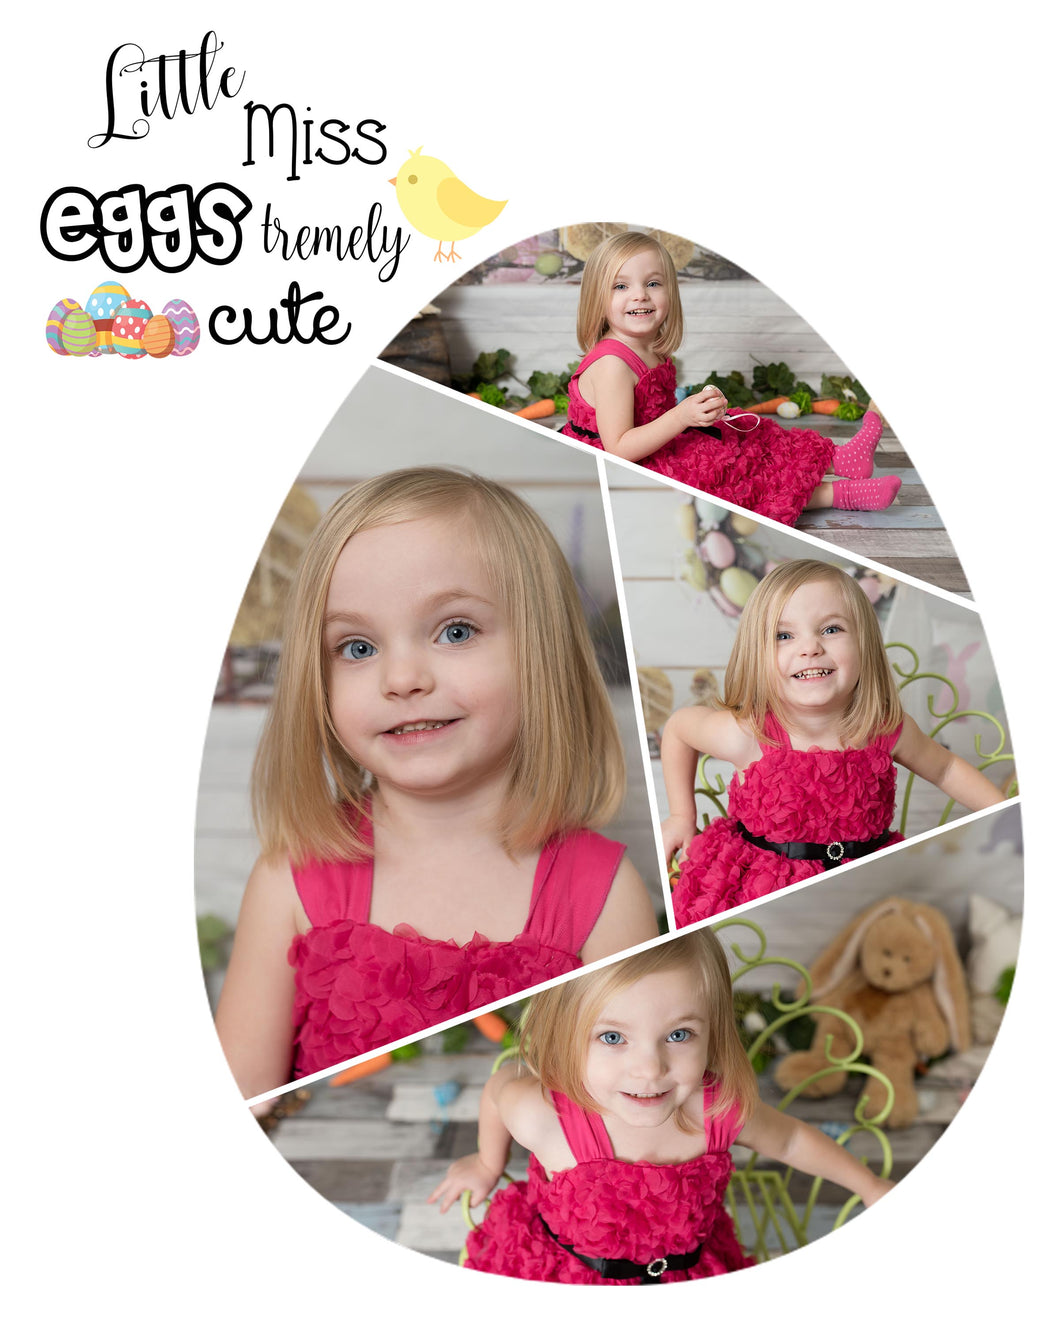 Easter Egg Templates - Little Miss (mister) eggstremely cute (french version included)